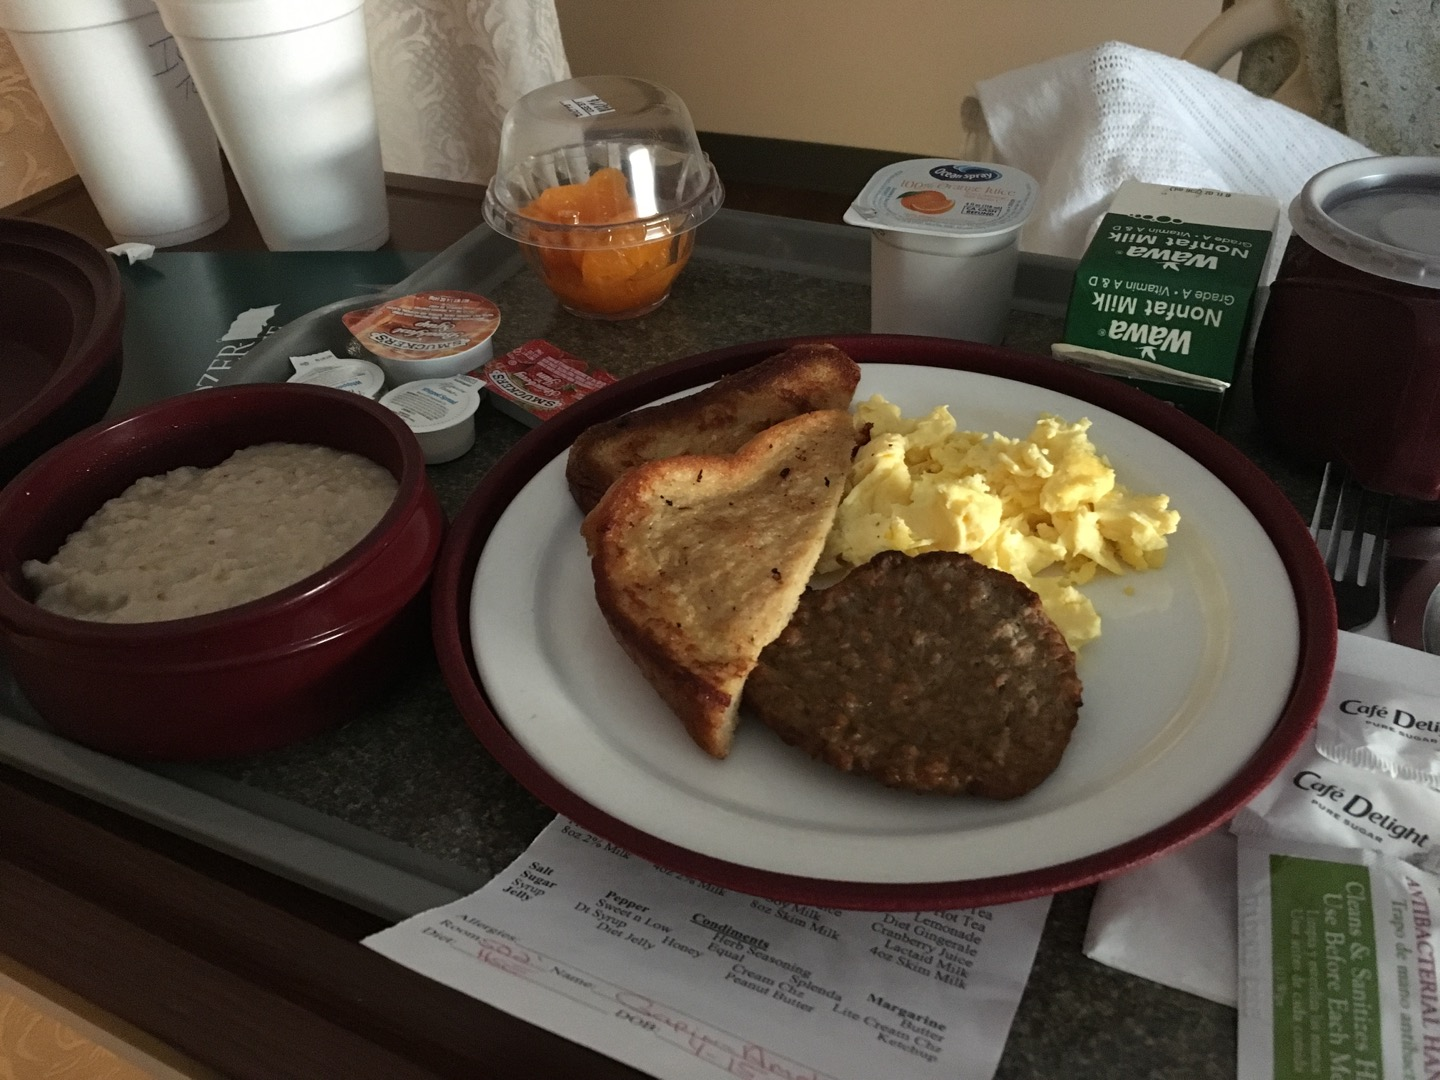 French toast, scrambled eggs, sausage, and oatmeal!